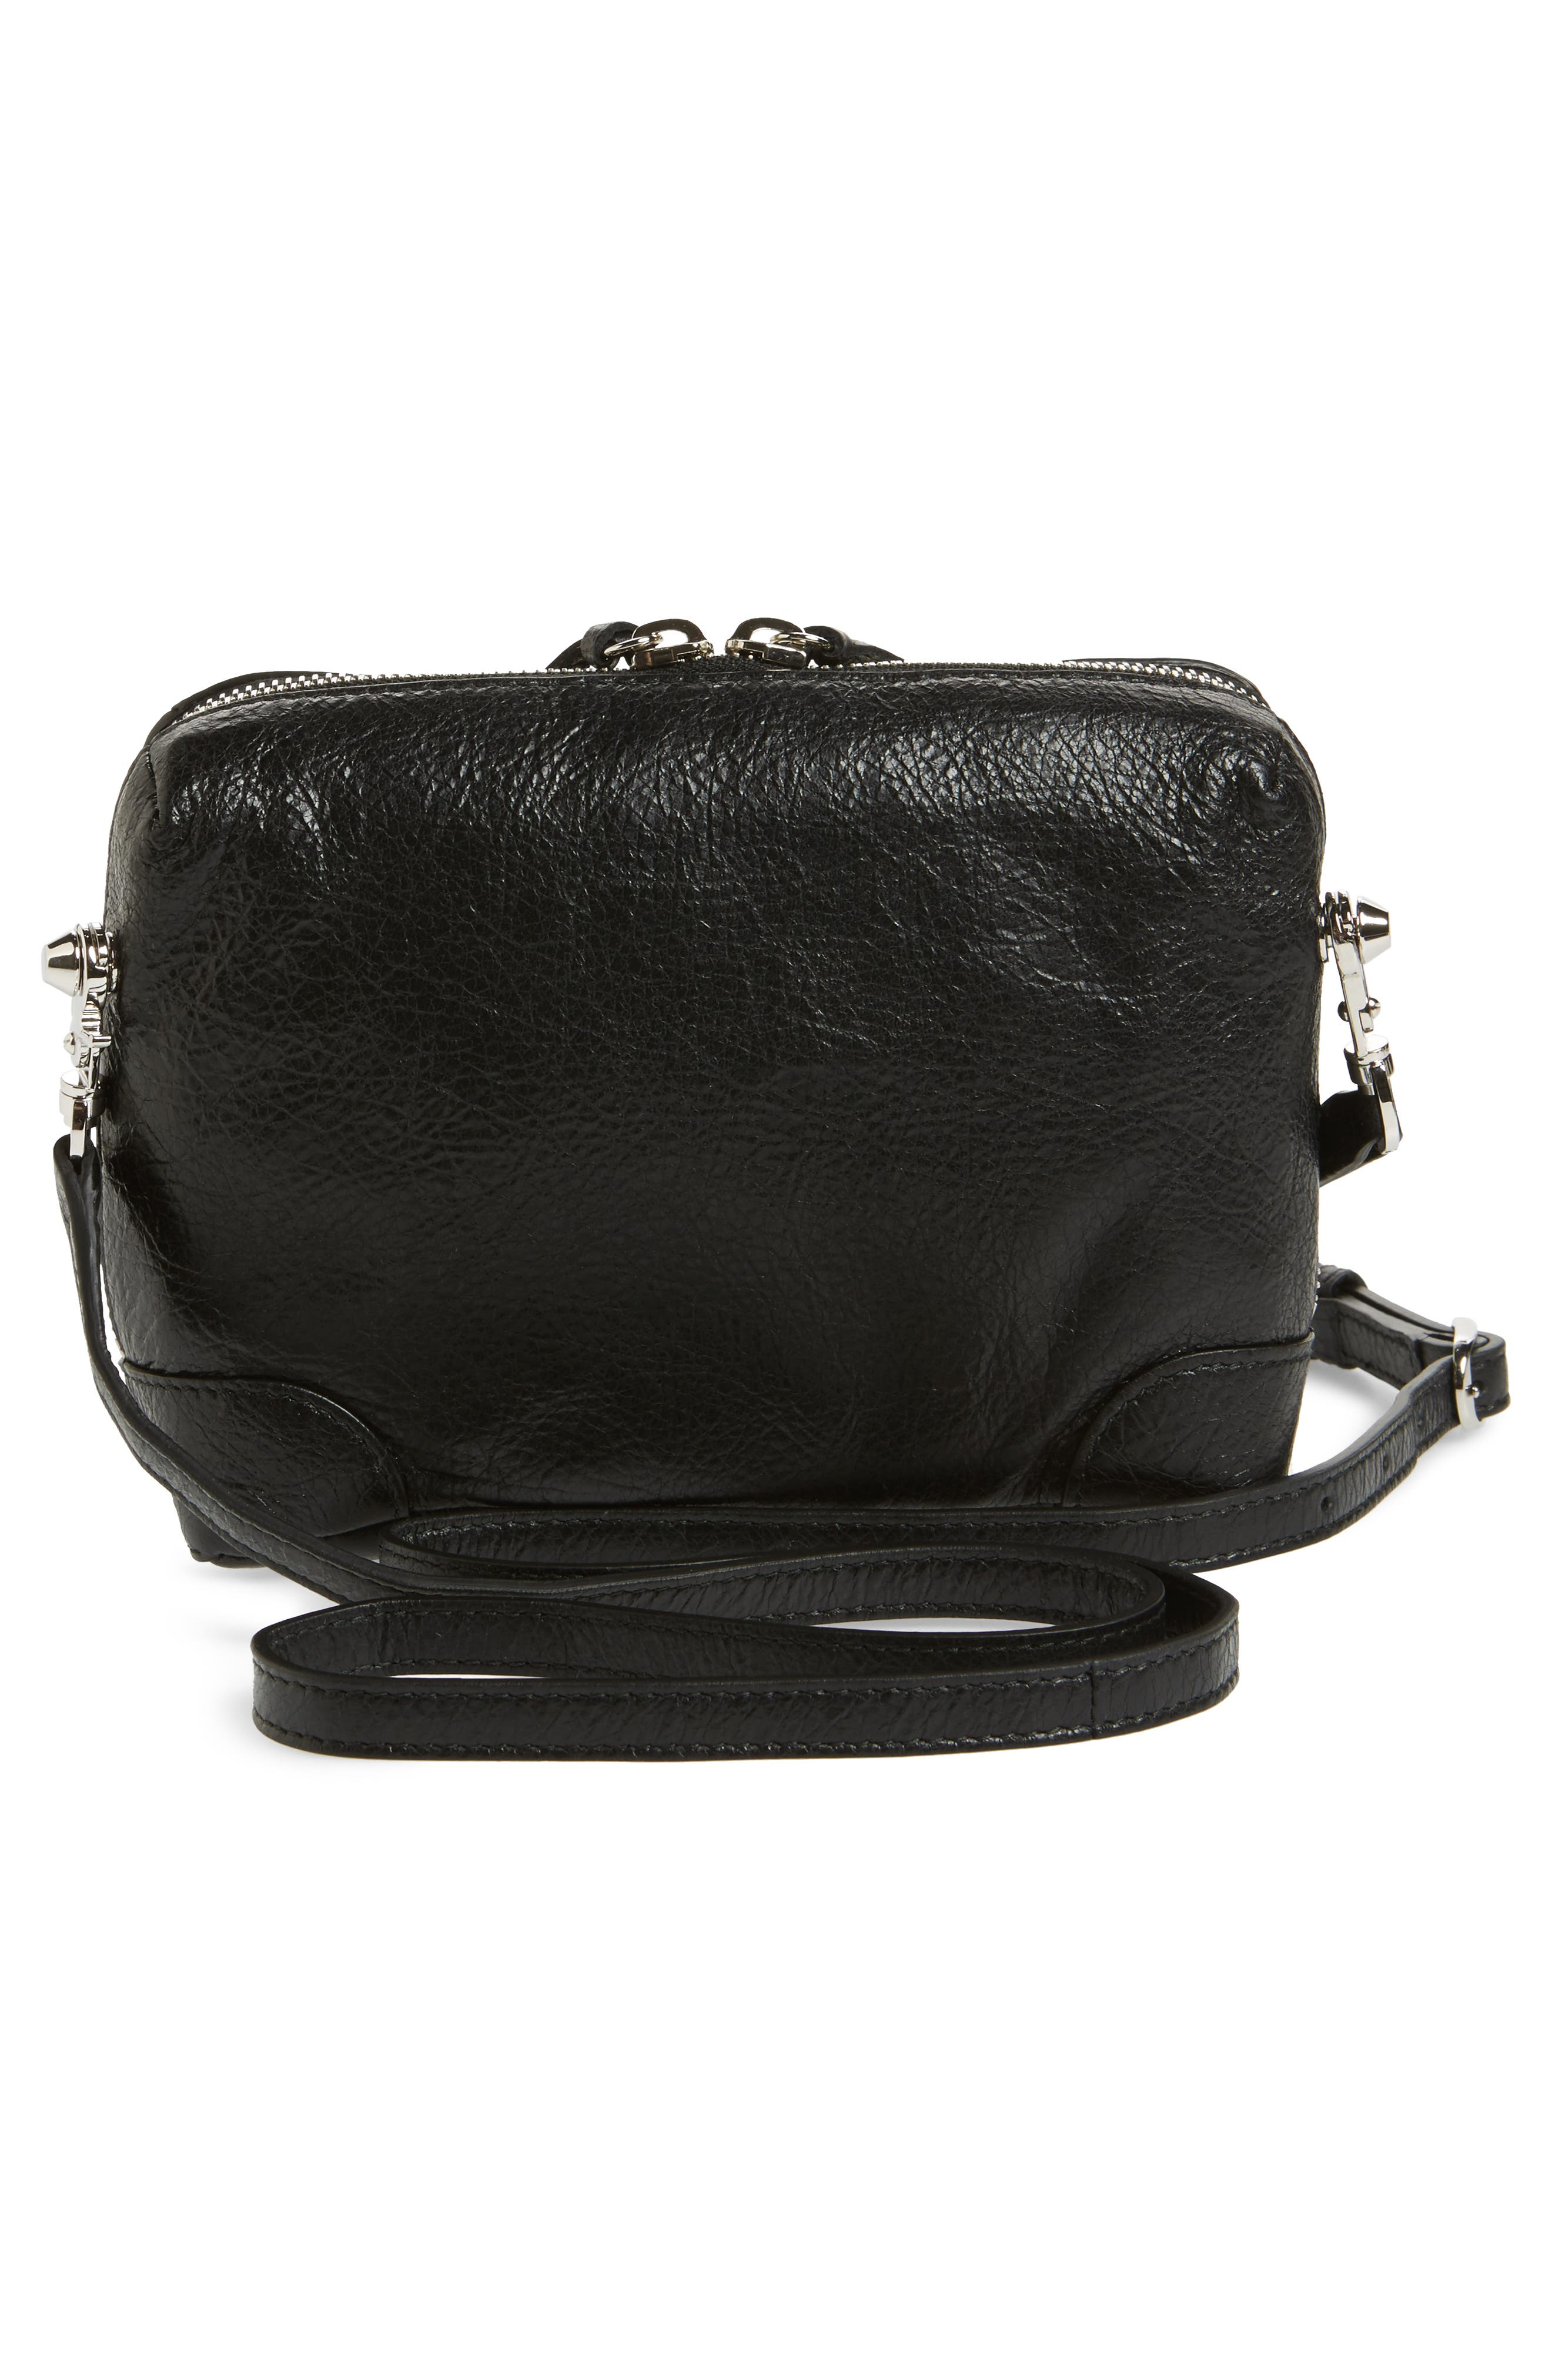 Extra Small Classic Reporter Leather Shoulder Bag,                             Alternate thumbnail 3, color,                             Noir